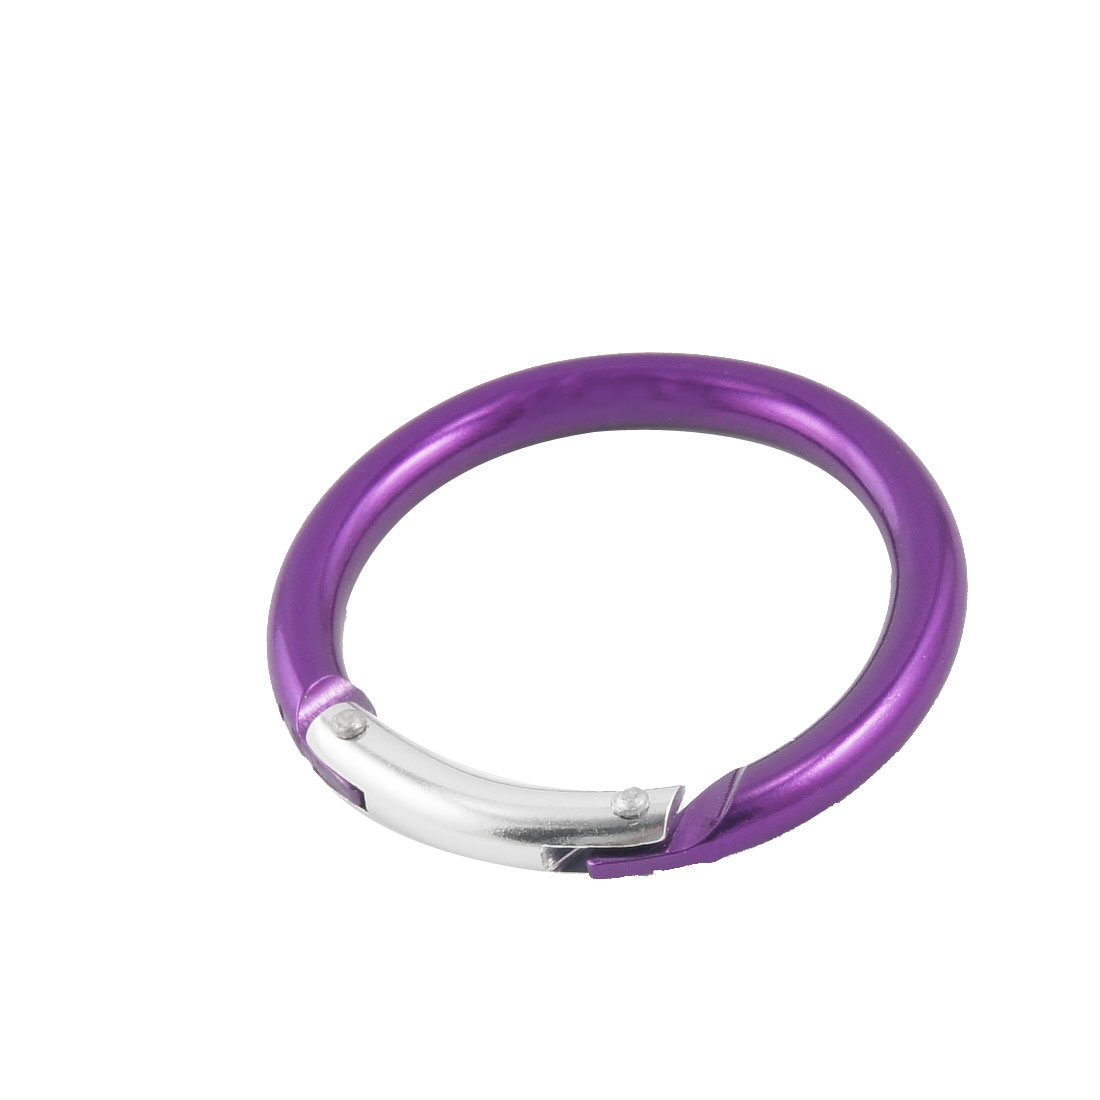 Purple Sliver Tone Circle Shaped Keys Bottle Holder Carabiner 5cm Diameter